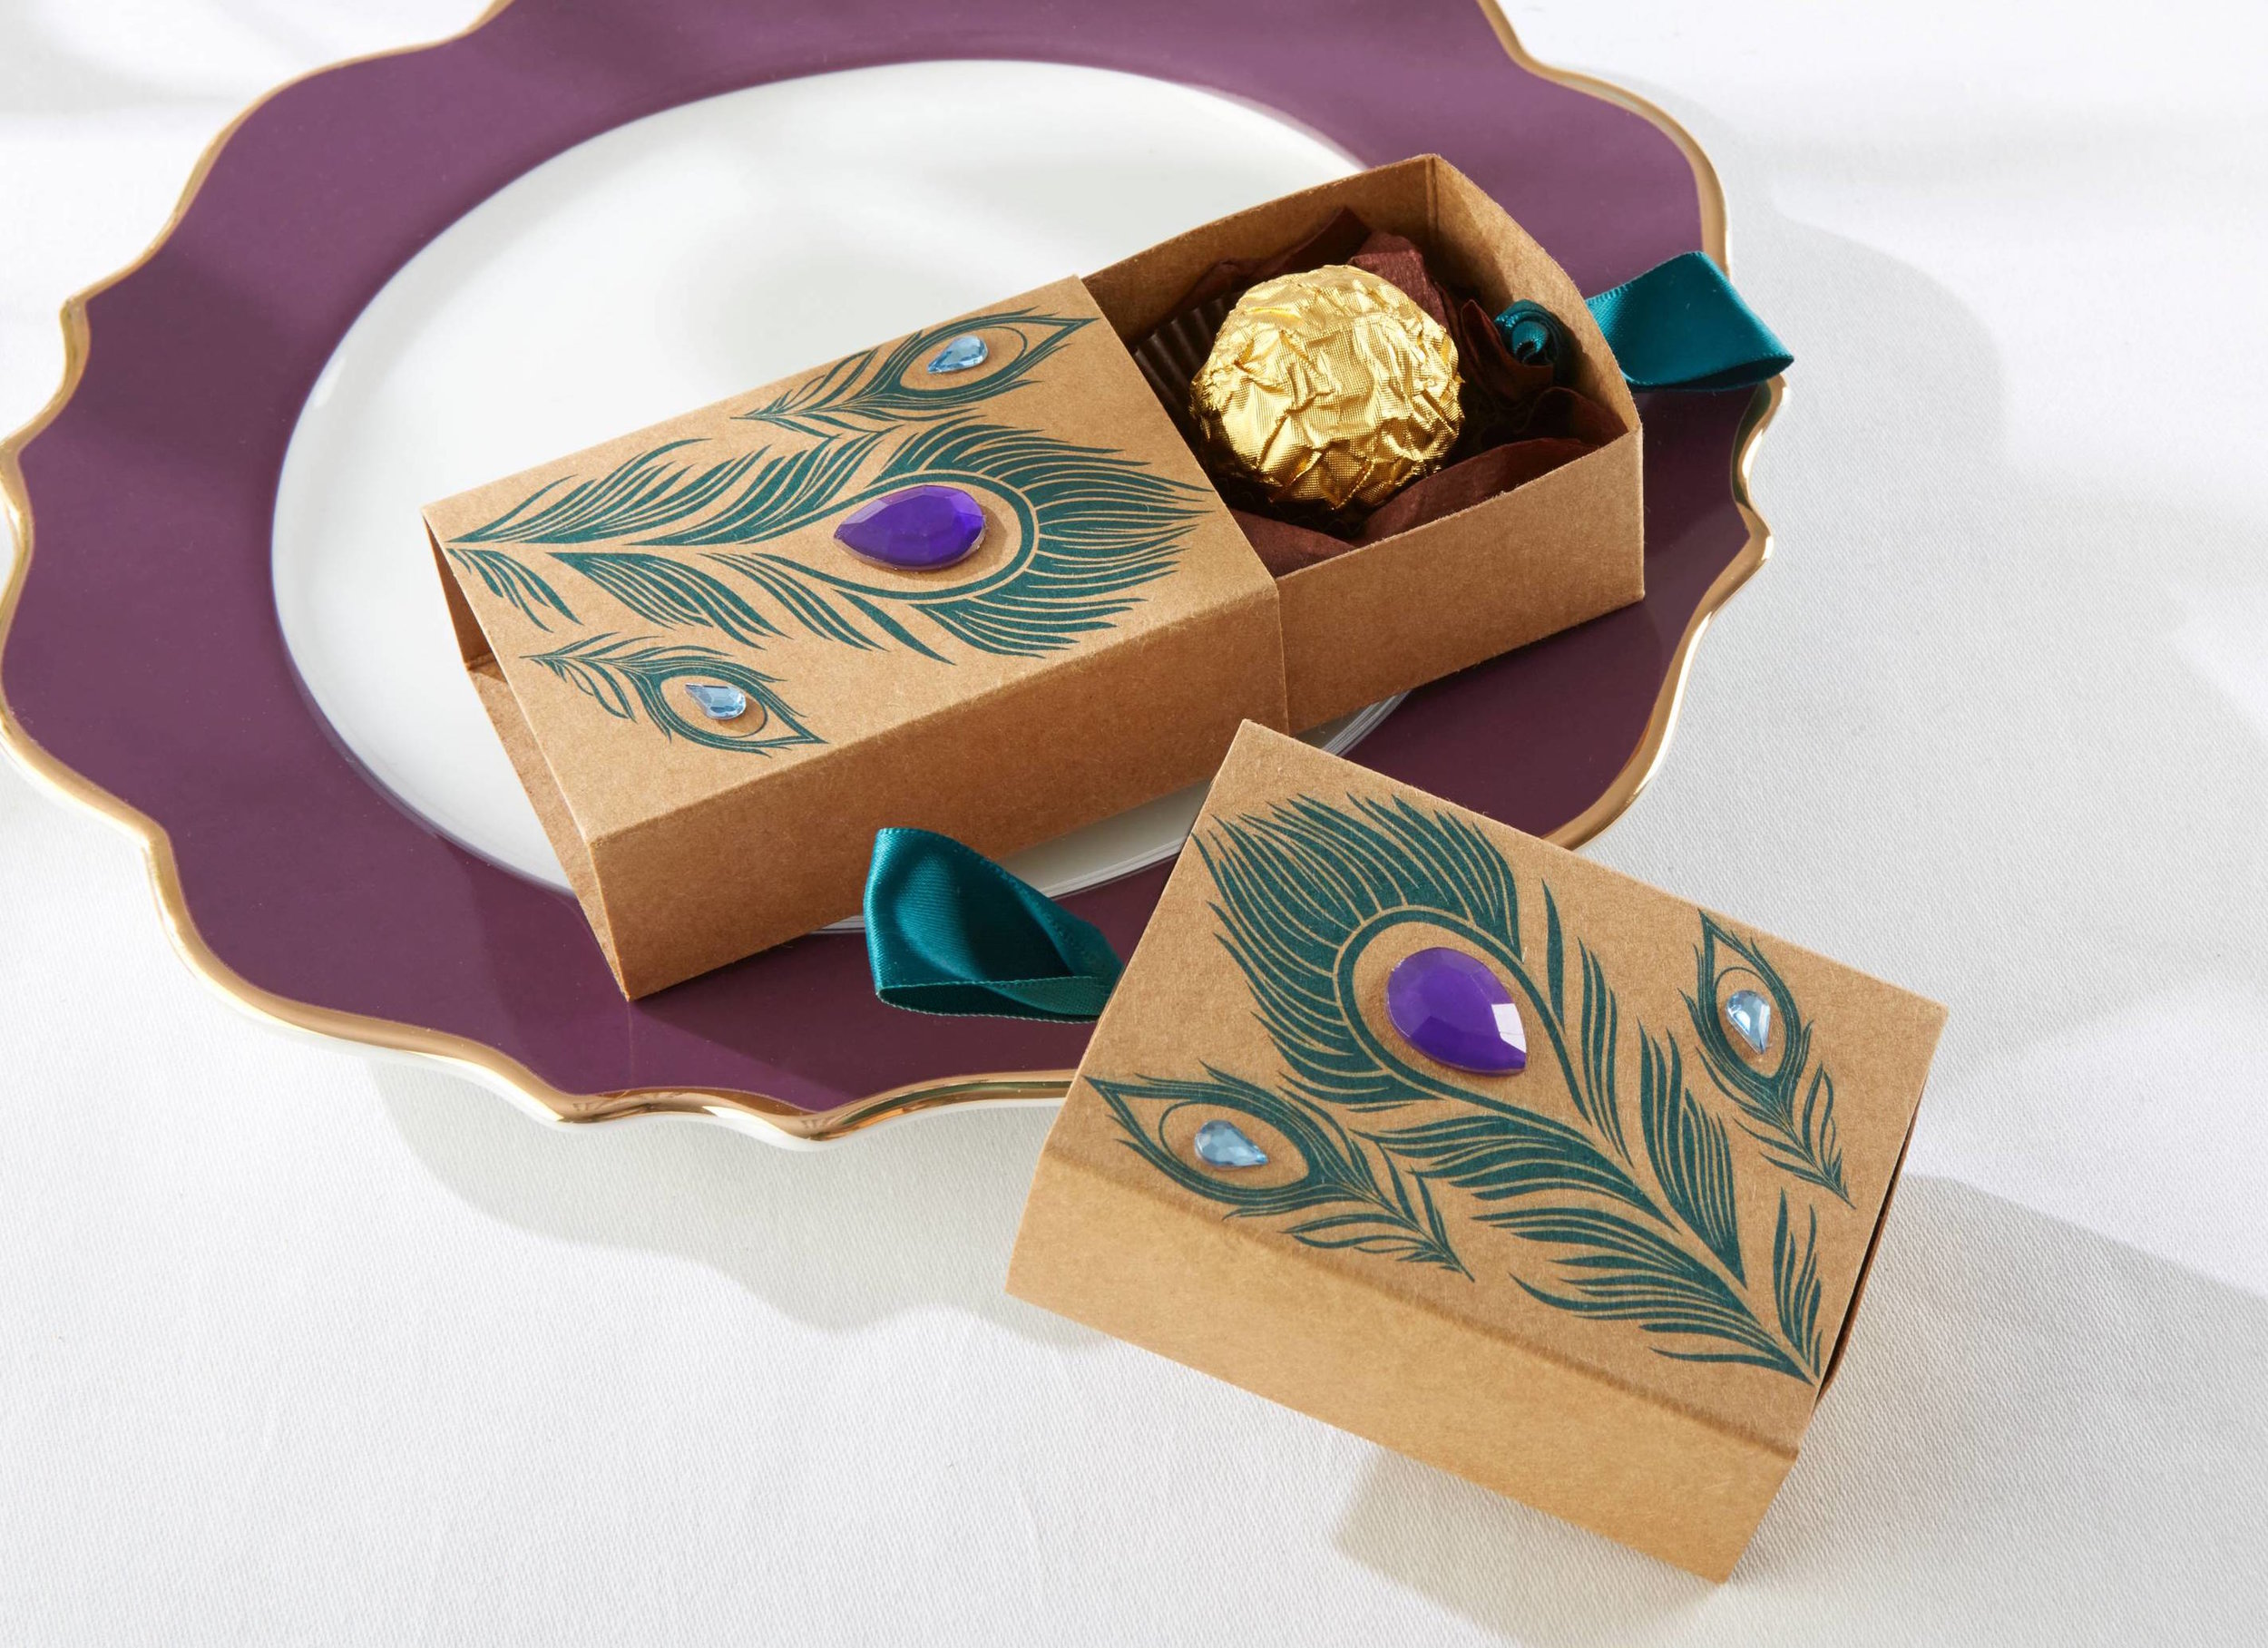 Peacock Jeweled Favor Box | Perfect for Chocolate Favors | from Essential Wedding Day Accessories for a Peacock Wedding {inspiration board} | as seen on www.BrendasWeddingBlog.com